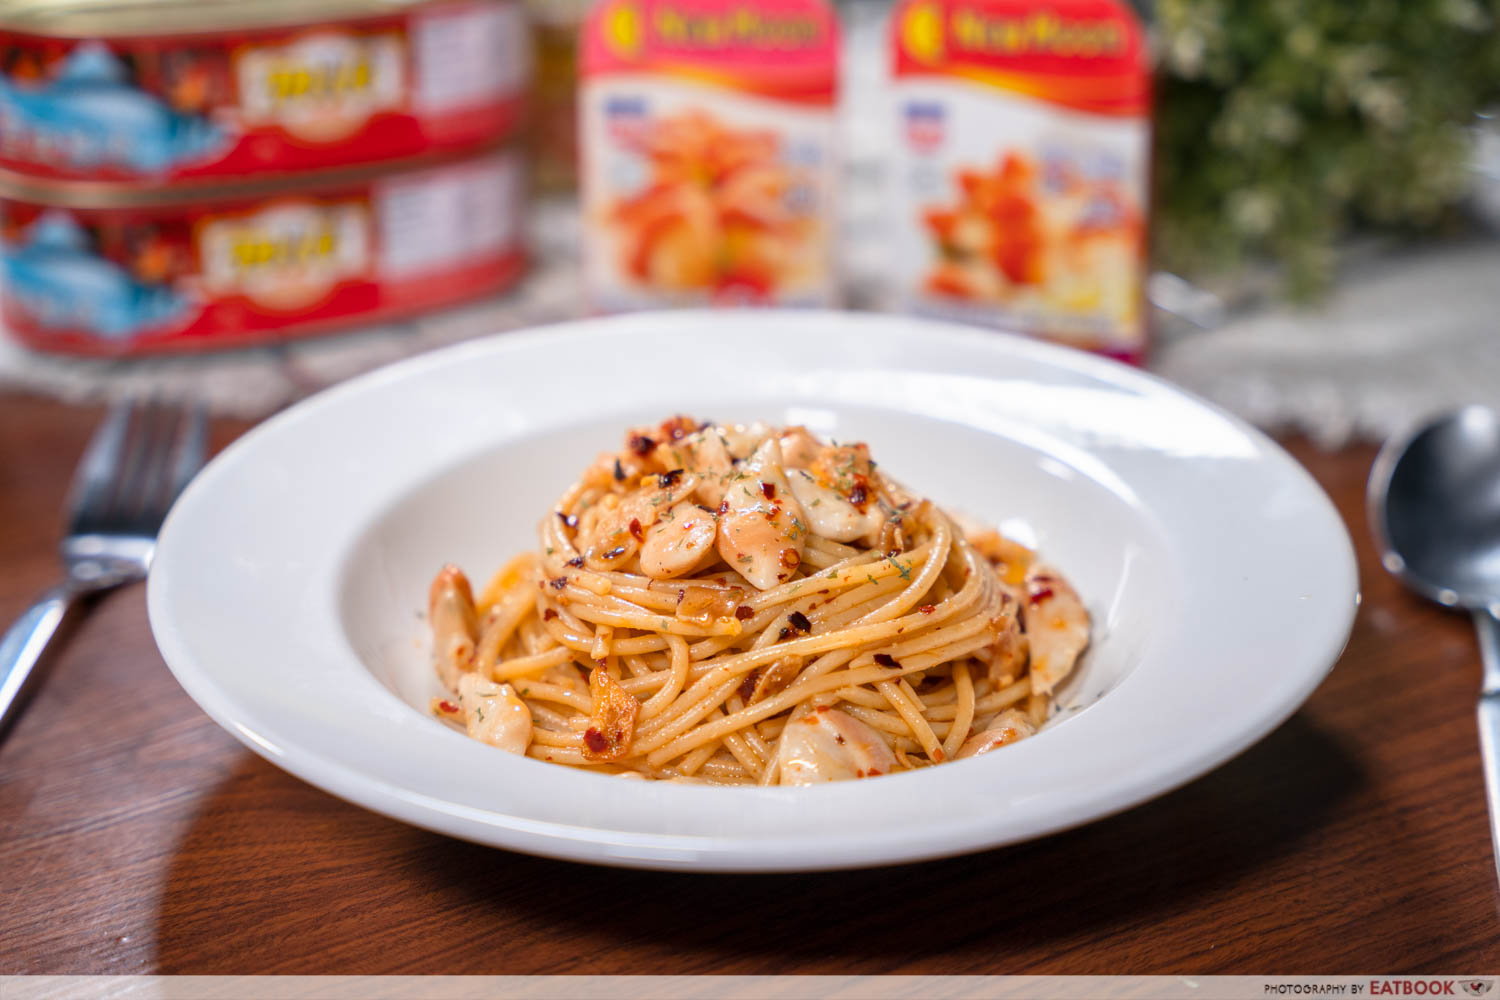 Canned food recipes - aglio olio with clams